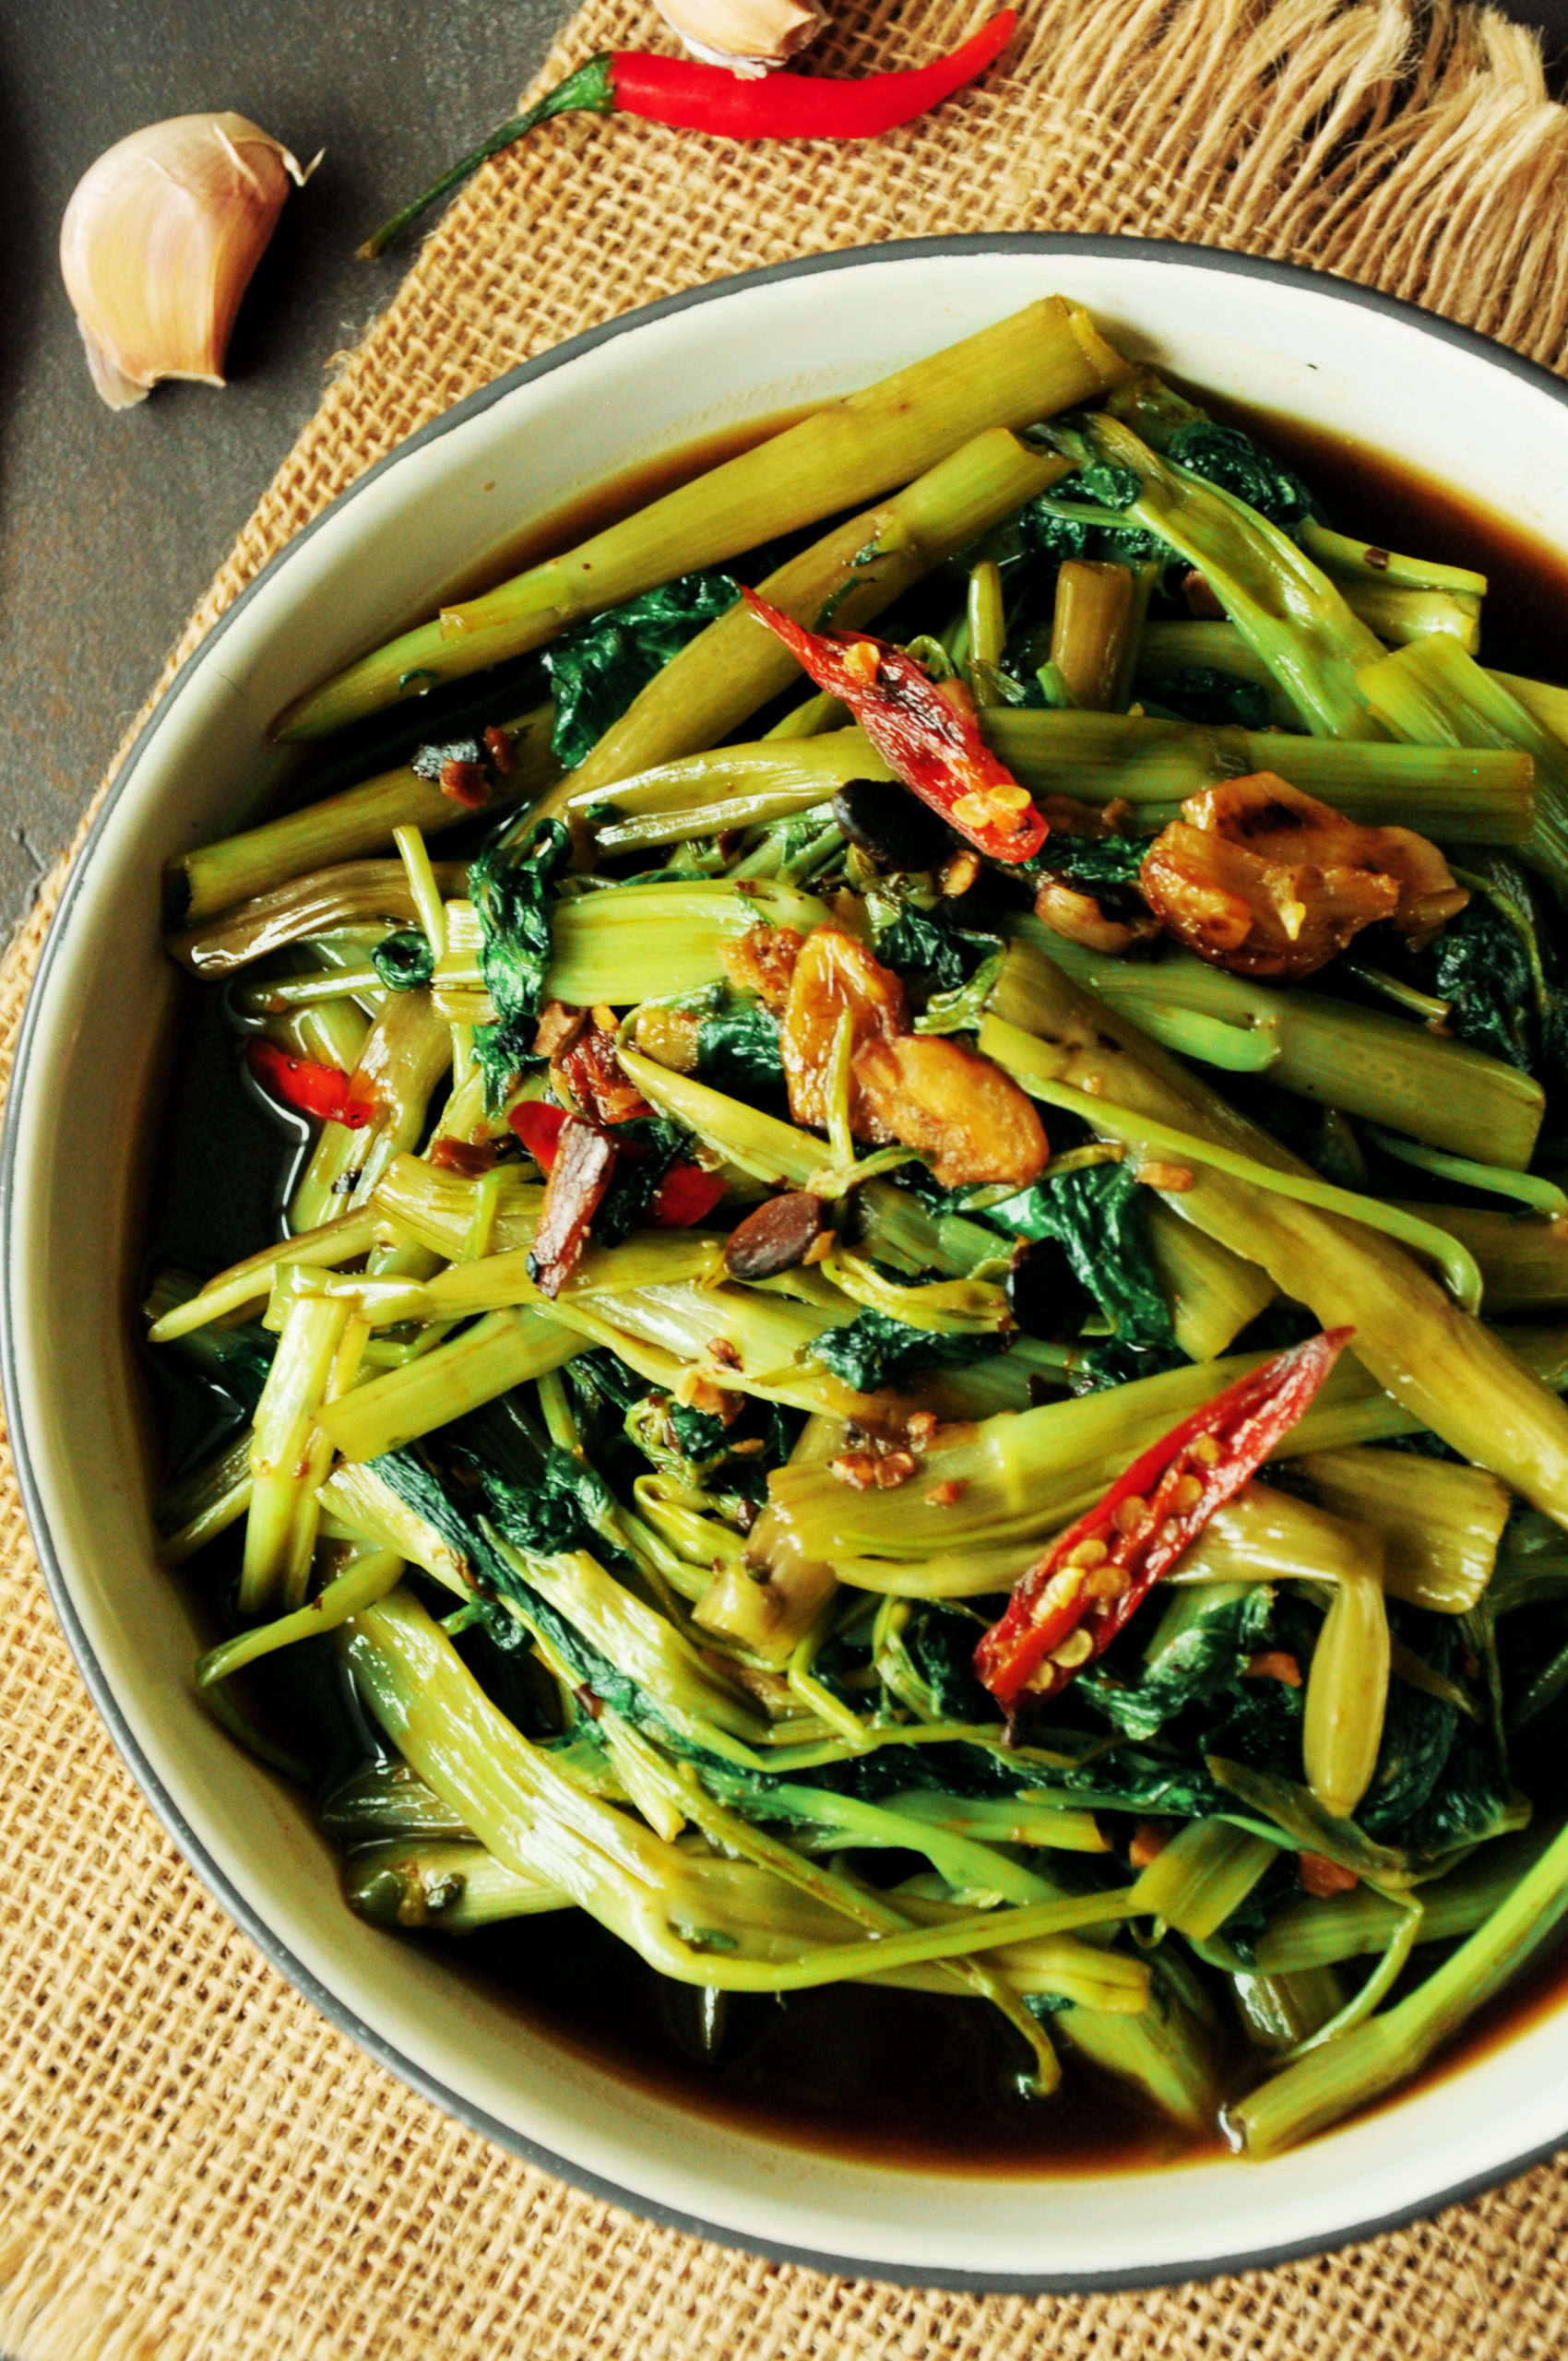 Morning Glory Vegetable : morning, glory, vegetable, Stir-Fried, Water, Spinach, Recipe, (Morning, Glory)